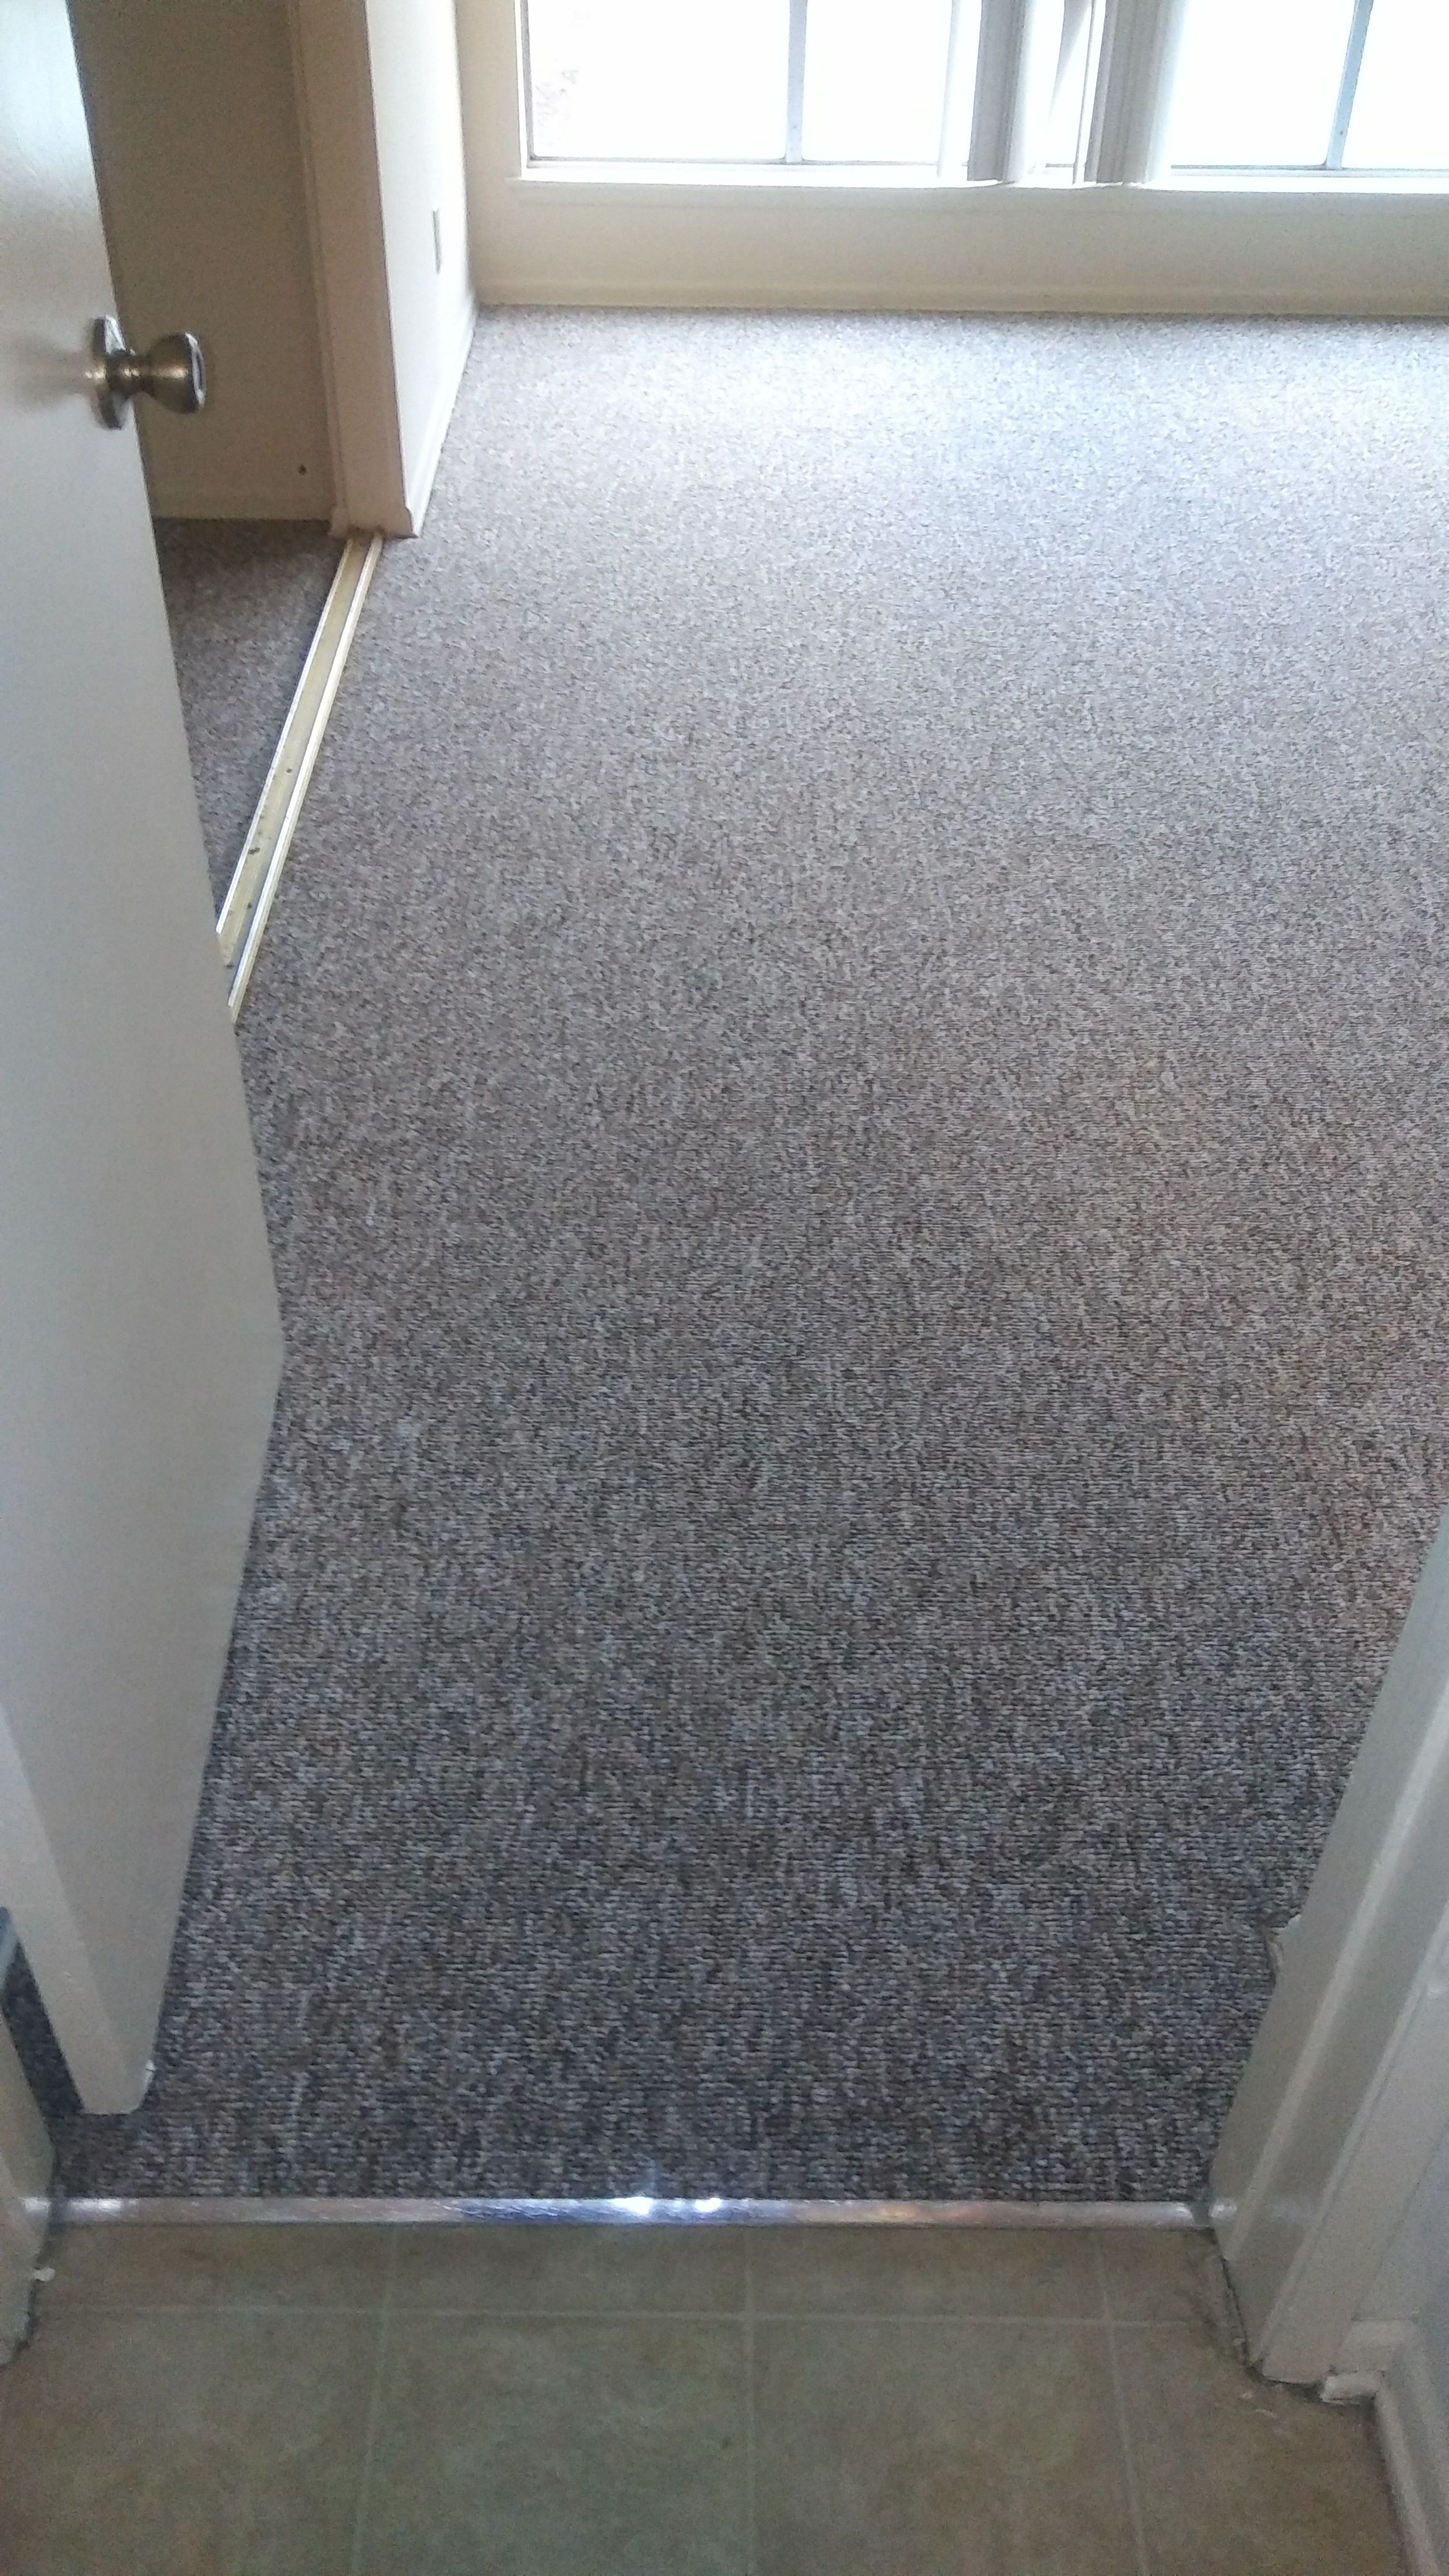 Do You Need New Carpet In The Bedrooms Call Us To Schedule Your Free Quote Flooring Carpet Installation Freeestim Floor Installation New Carpet Homeowner